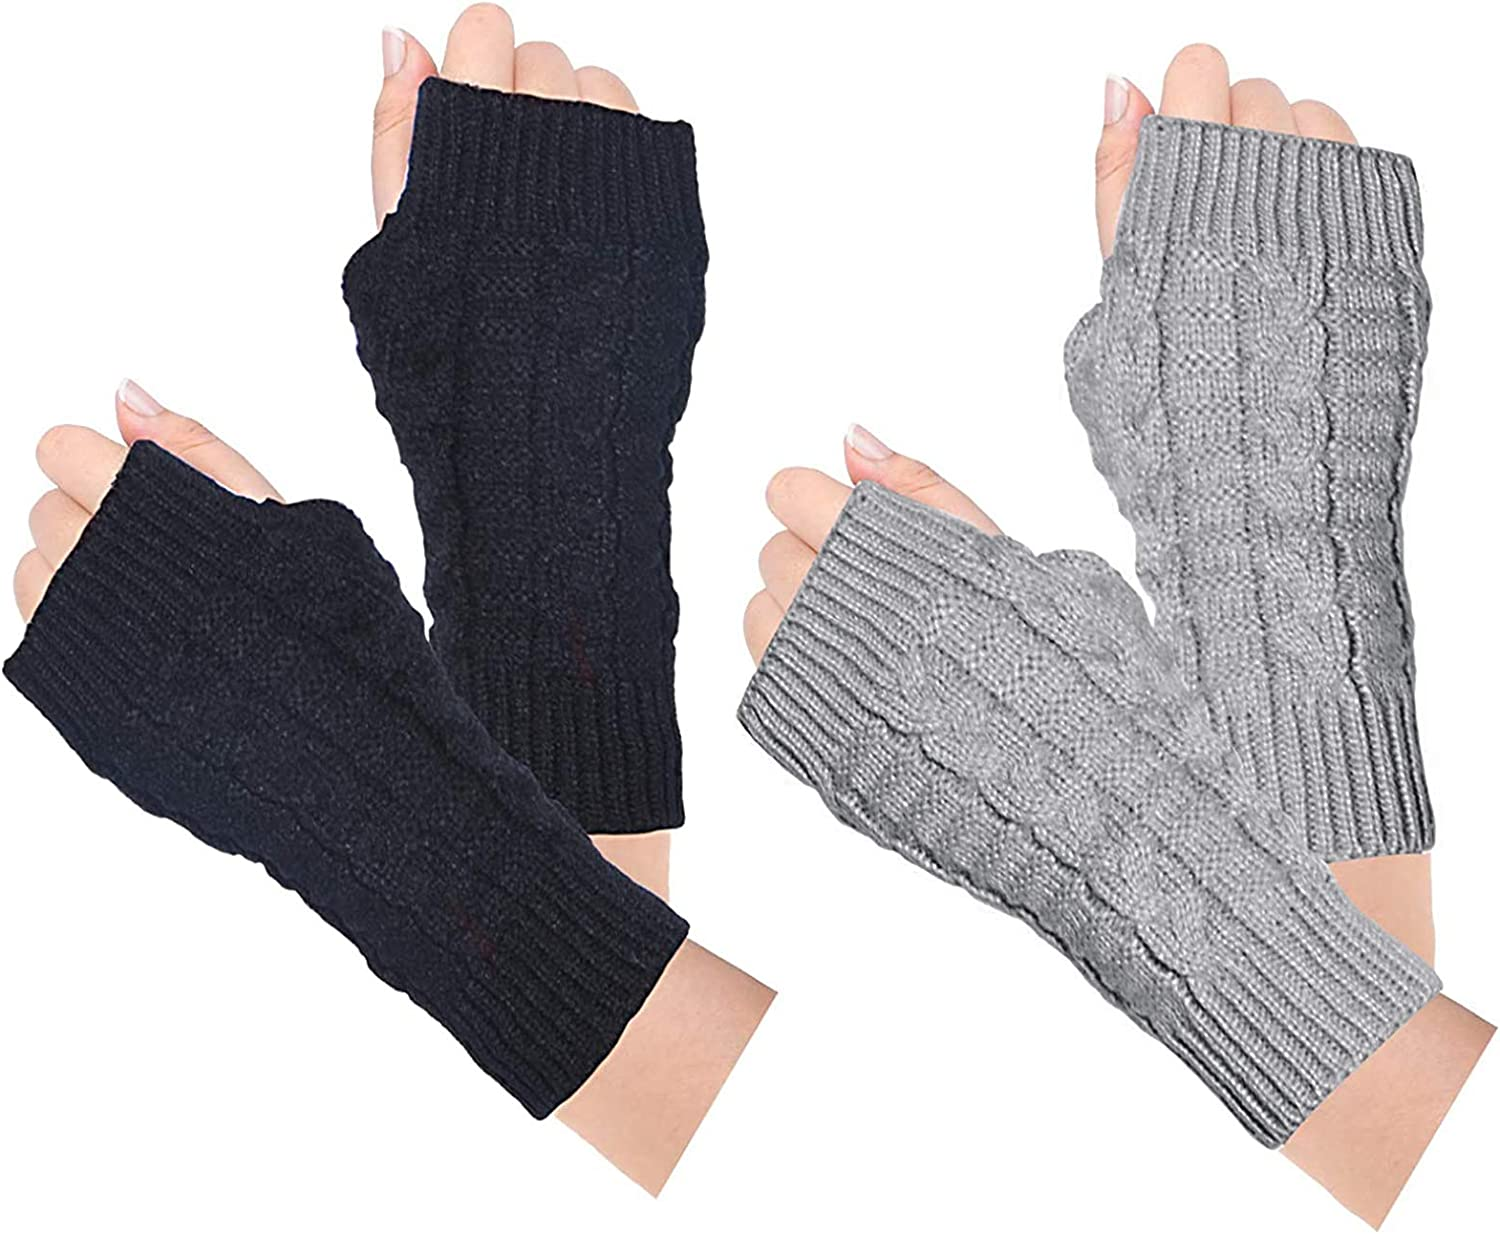 Knitted fingerless gloves Colorful knit arm warmers Gifts for women